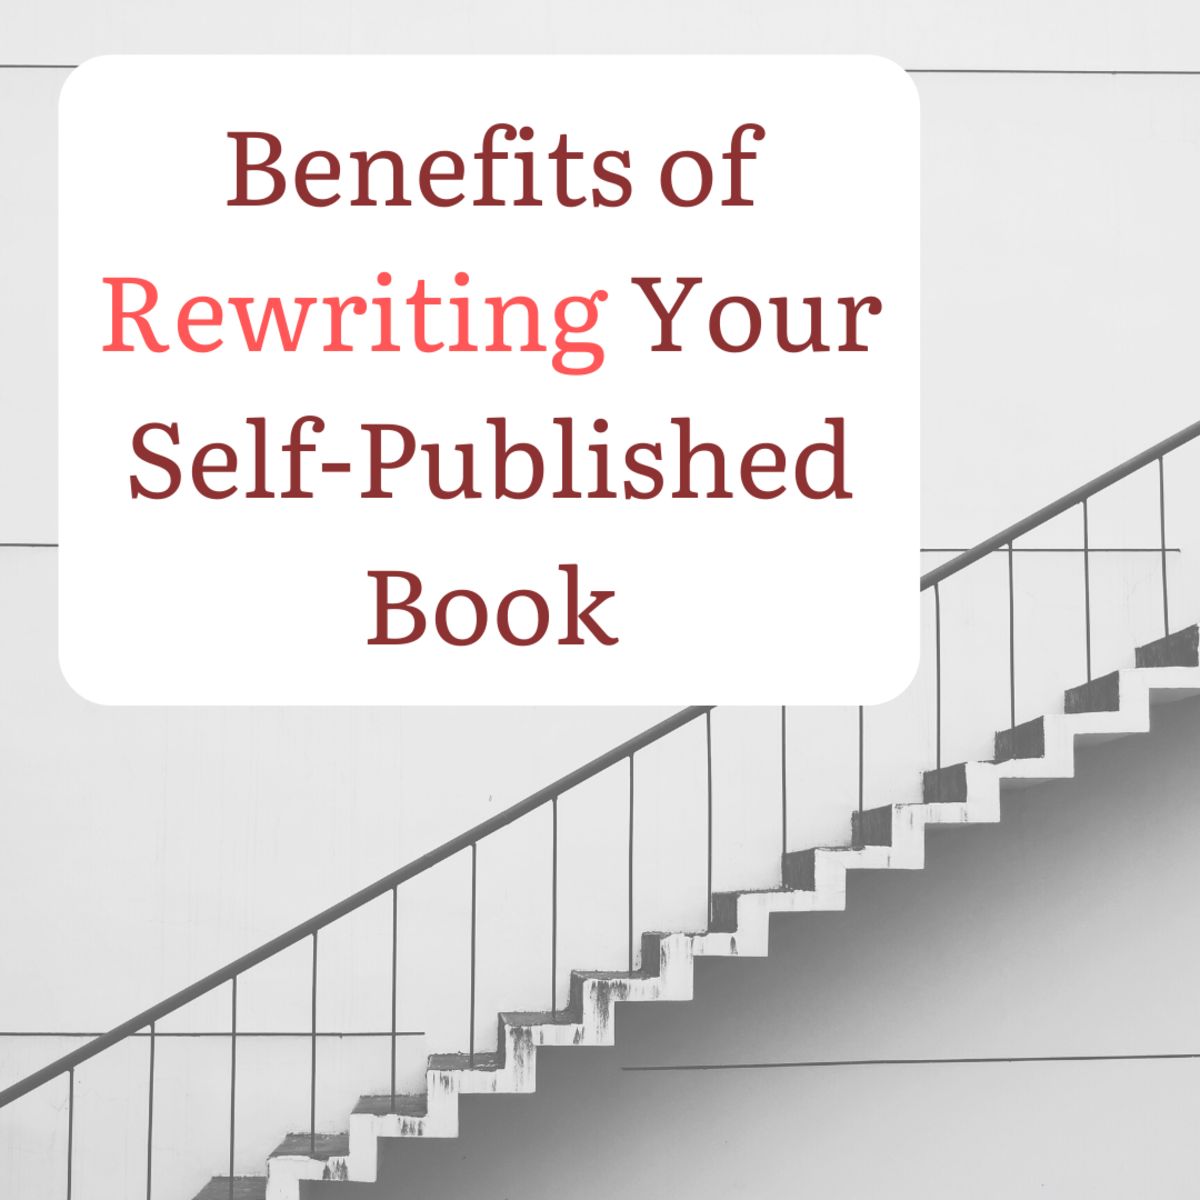 Top Reasons to Rewrite Your Self-Published Book